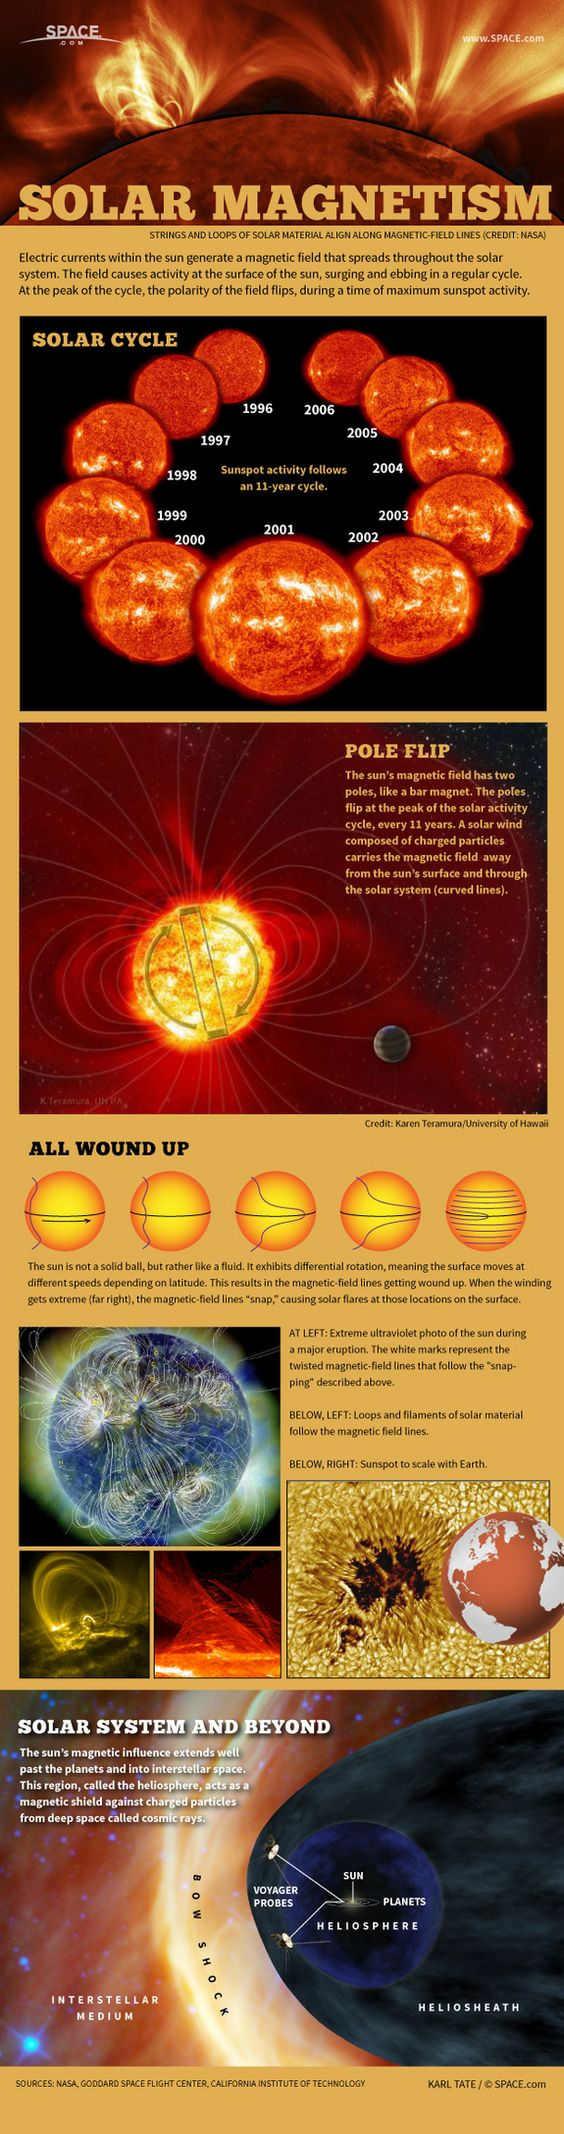 Infographic: How the sun's magnetic field works.: